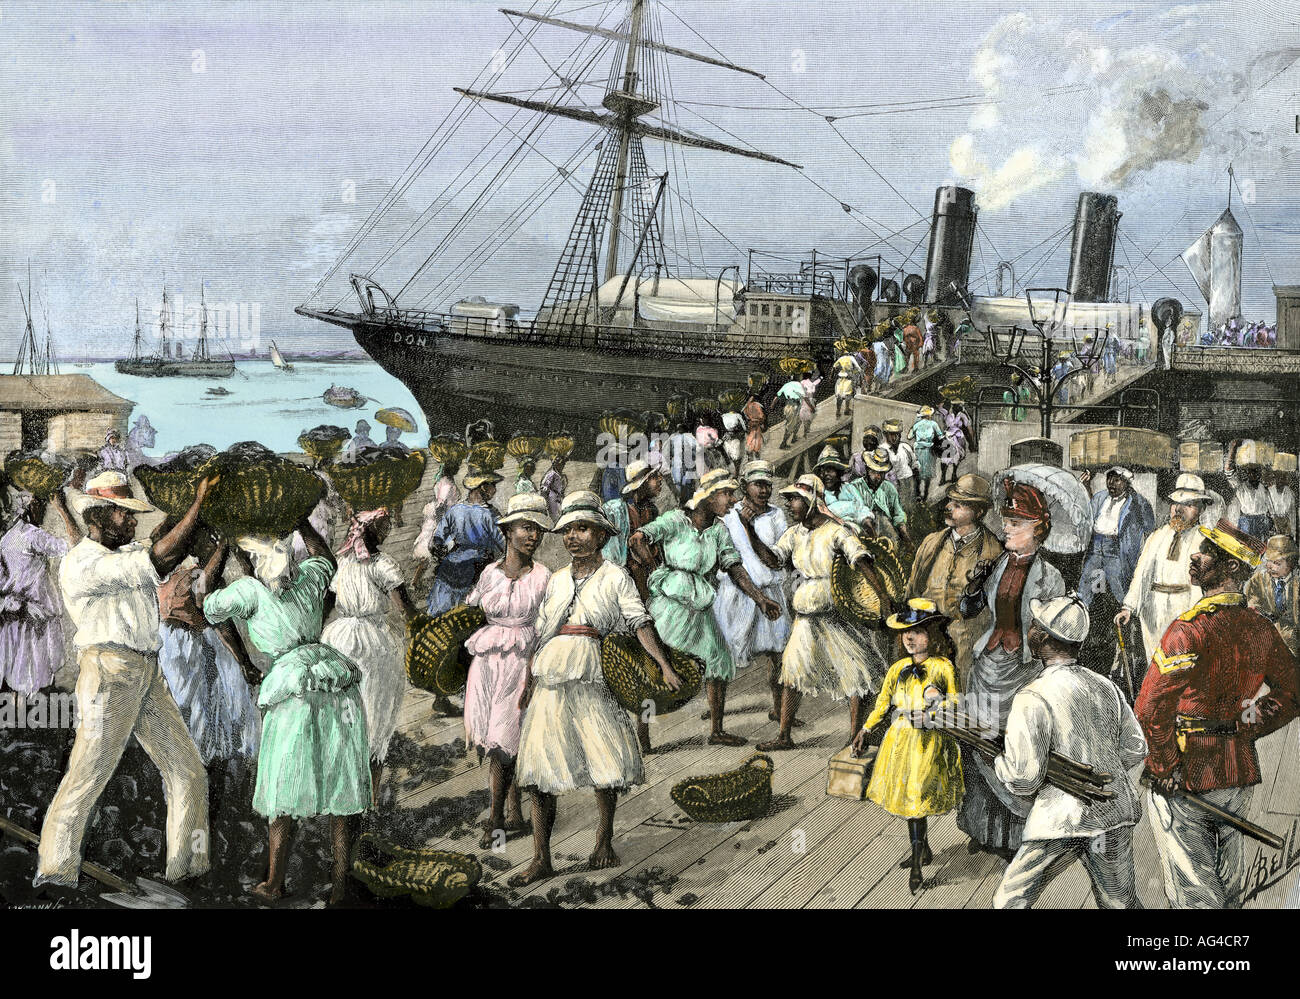 Native women carrying coal to a steamship at Kingston Jamaica 1880s. Hand-colored halftone of an illustration - Stock Image